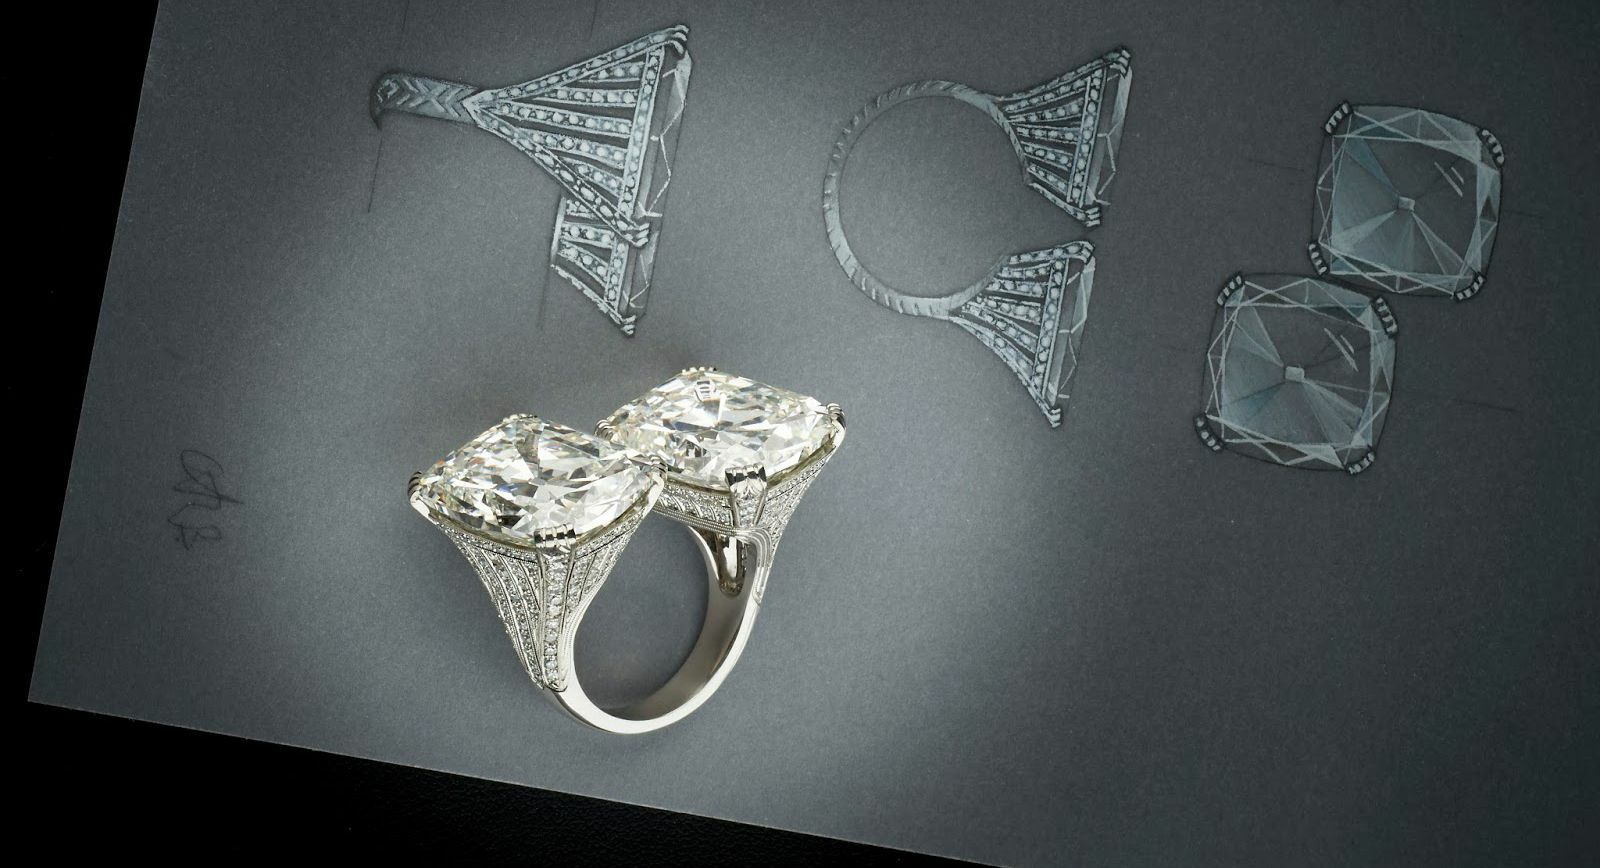 Diamond Trilogy. Part 1: Rings With Unusual Diamond Cuts